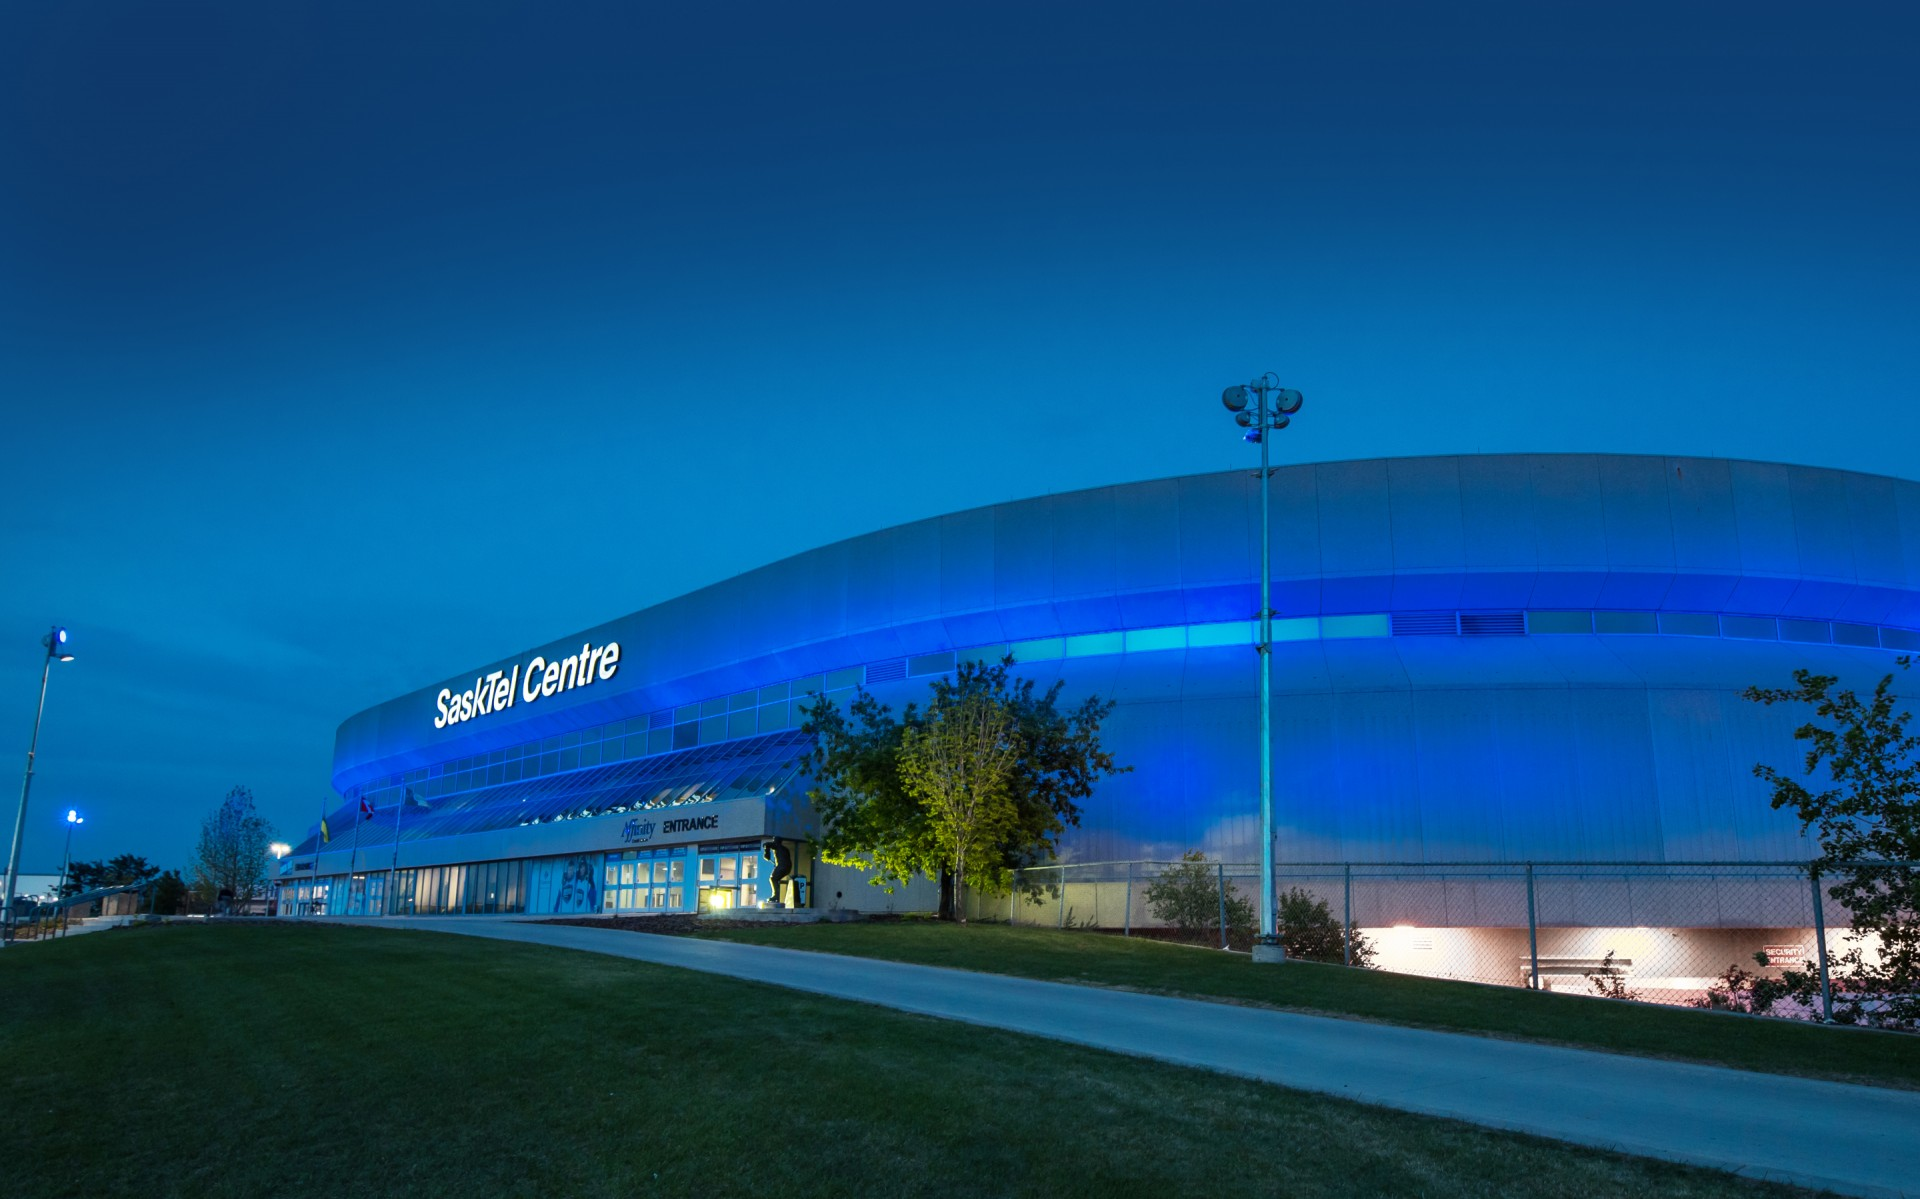 Fully programmable, the luminaires give the arena the ability to commemorate special events and holidays with different lighting scenes and colors.